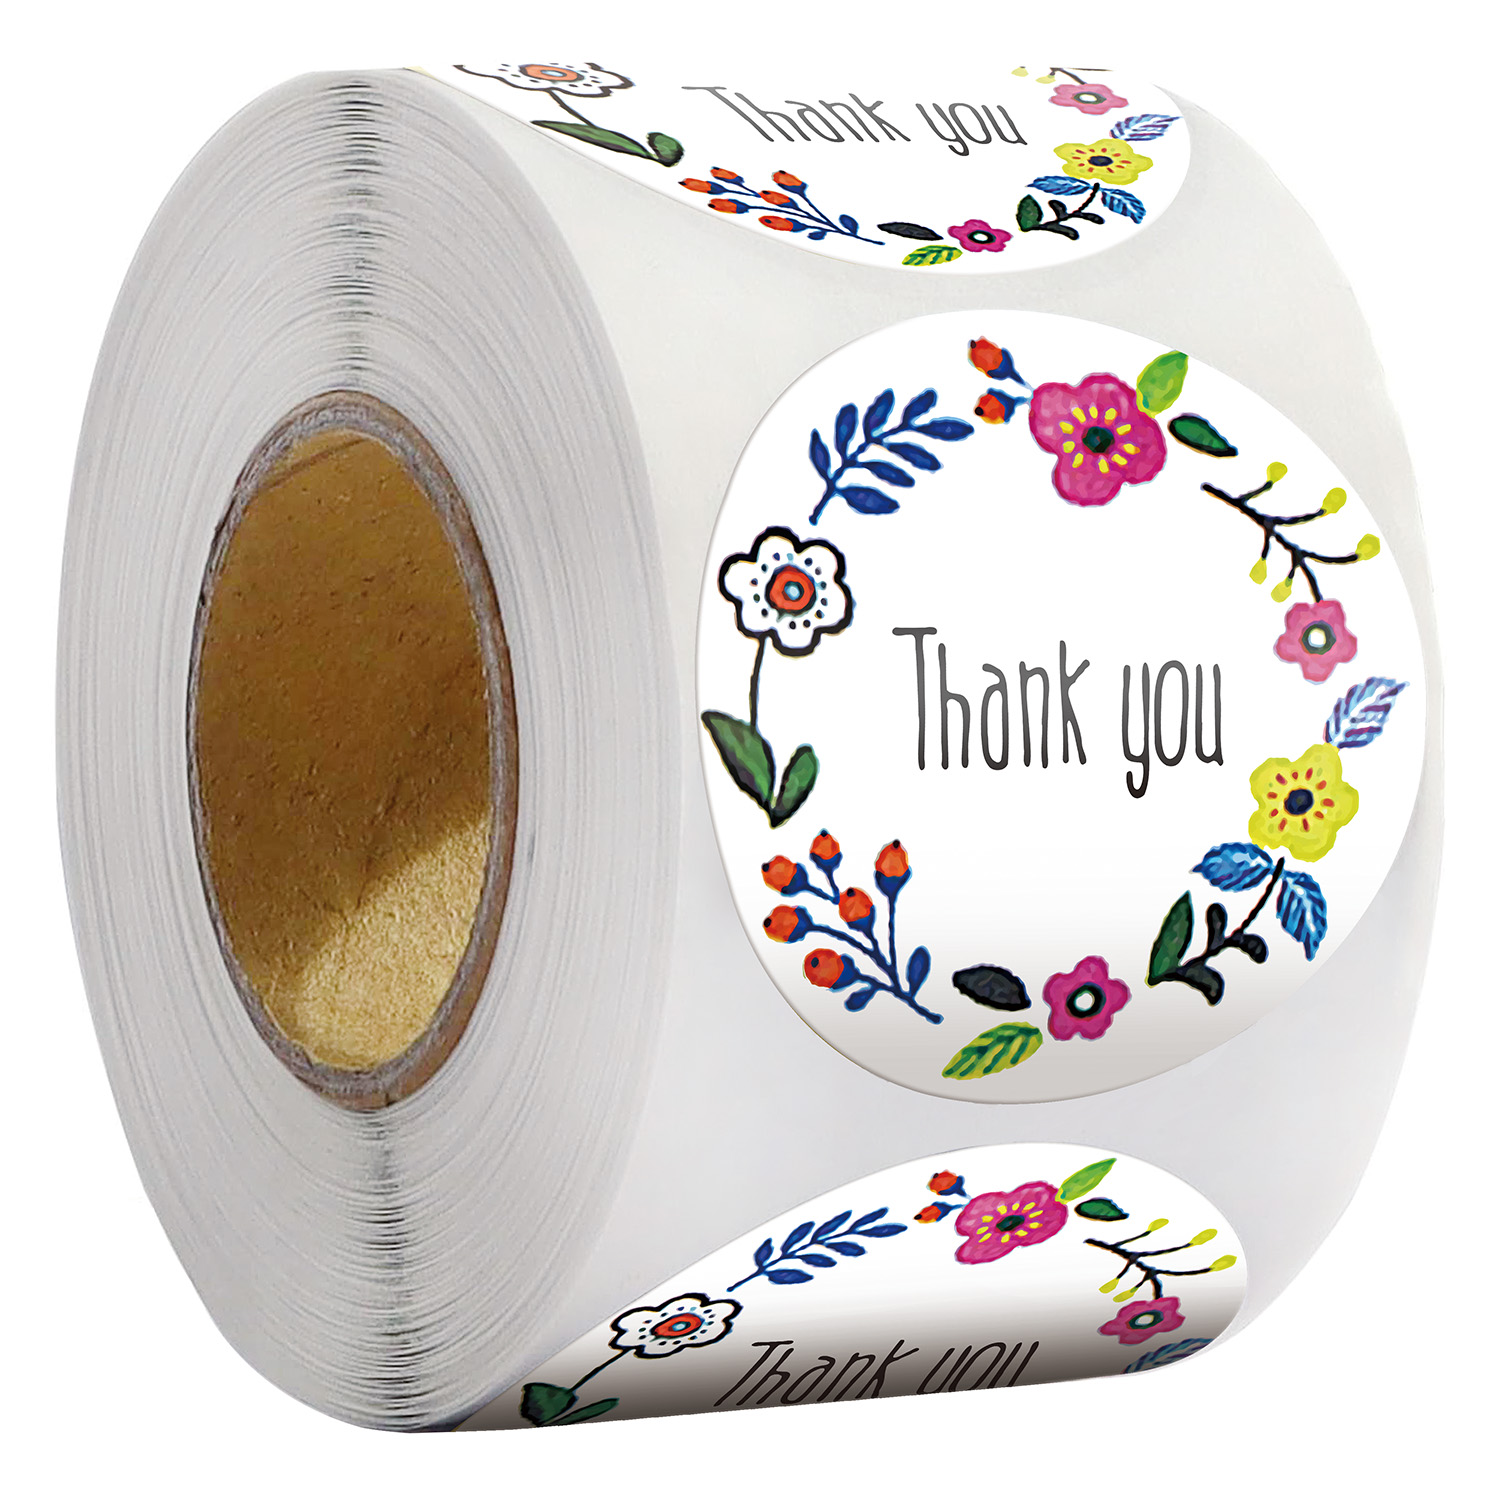 500Pcs/roll Round Thank You Sticker Envelope Gift decoration Seal Labels sticker kawaii Scrapbooking material stationery sticker